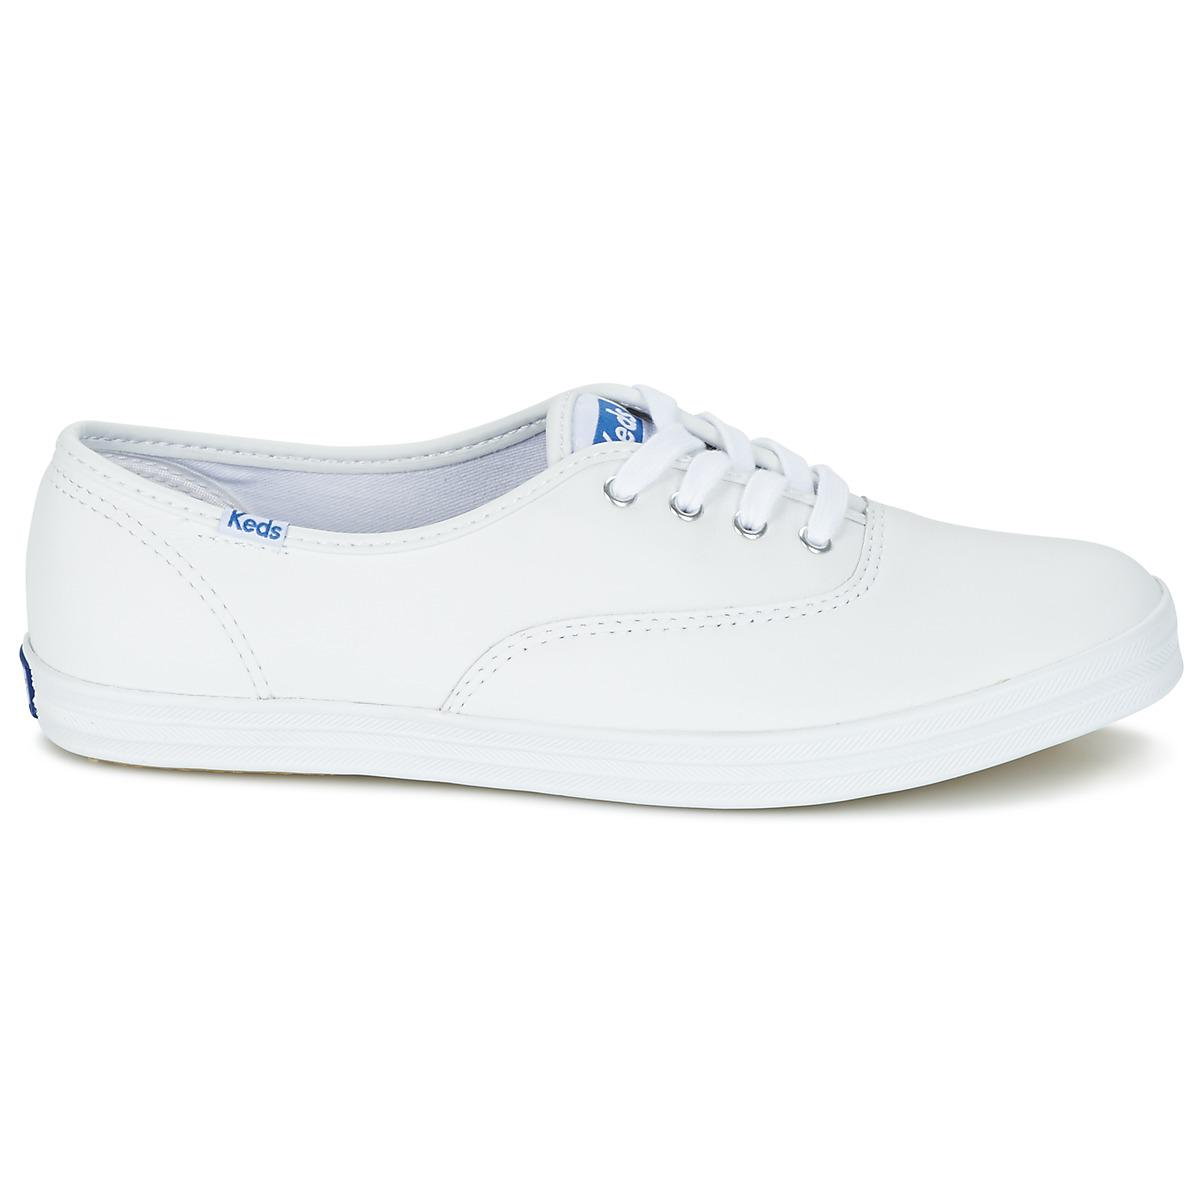 f8e7e5dc24097 Keds - Champion Cvo Women s Shoes (trainers) In White - Lyst. View  fullscreen